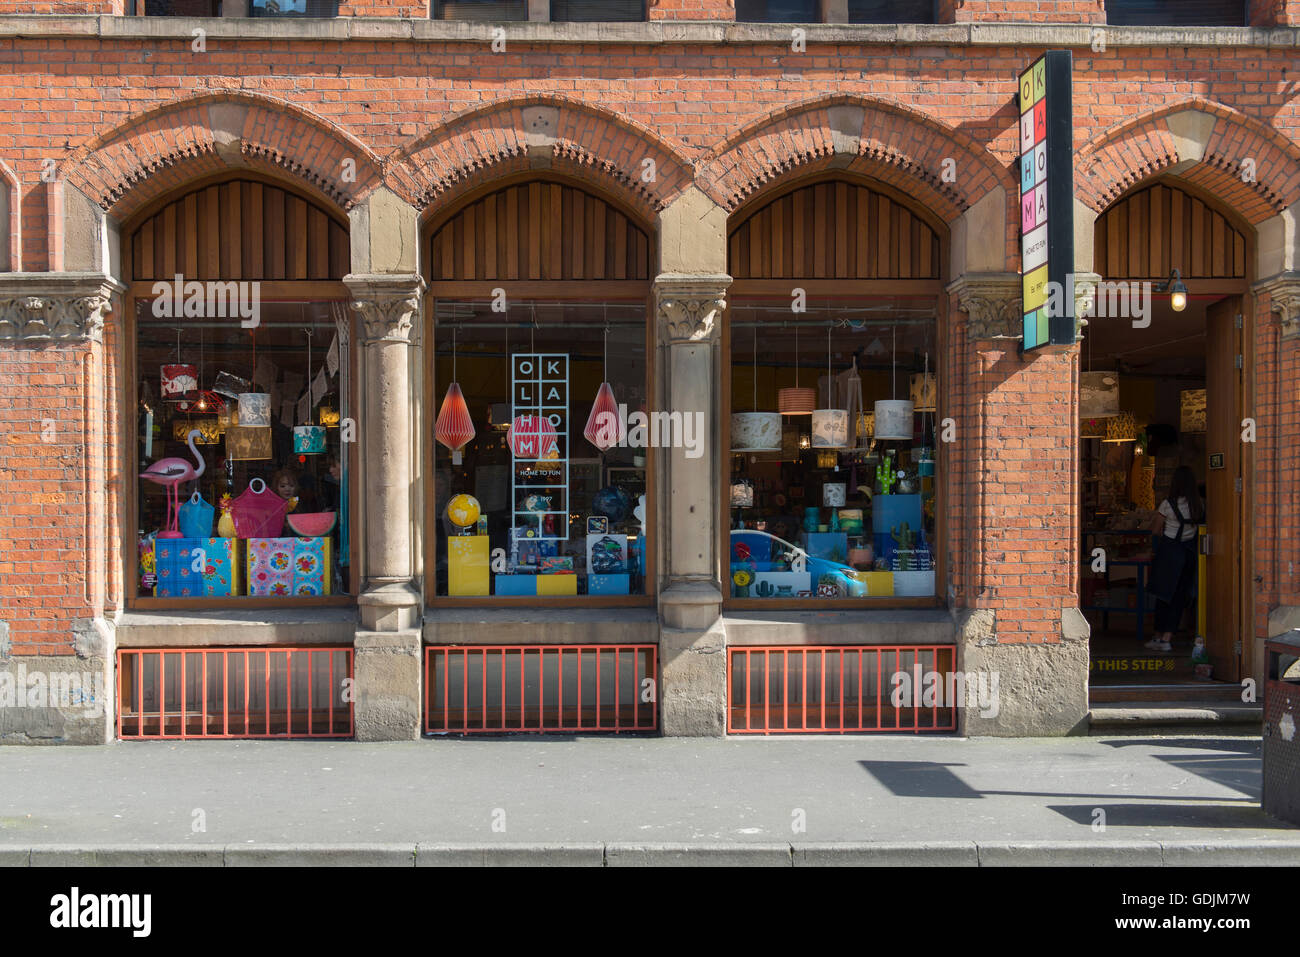 Oklahoma gift shop located on High Street in the Northern Quarter area of Manchester. - Stock Image